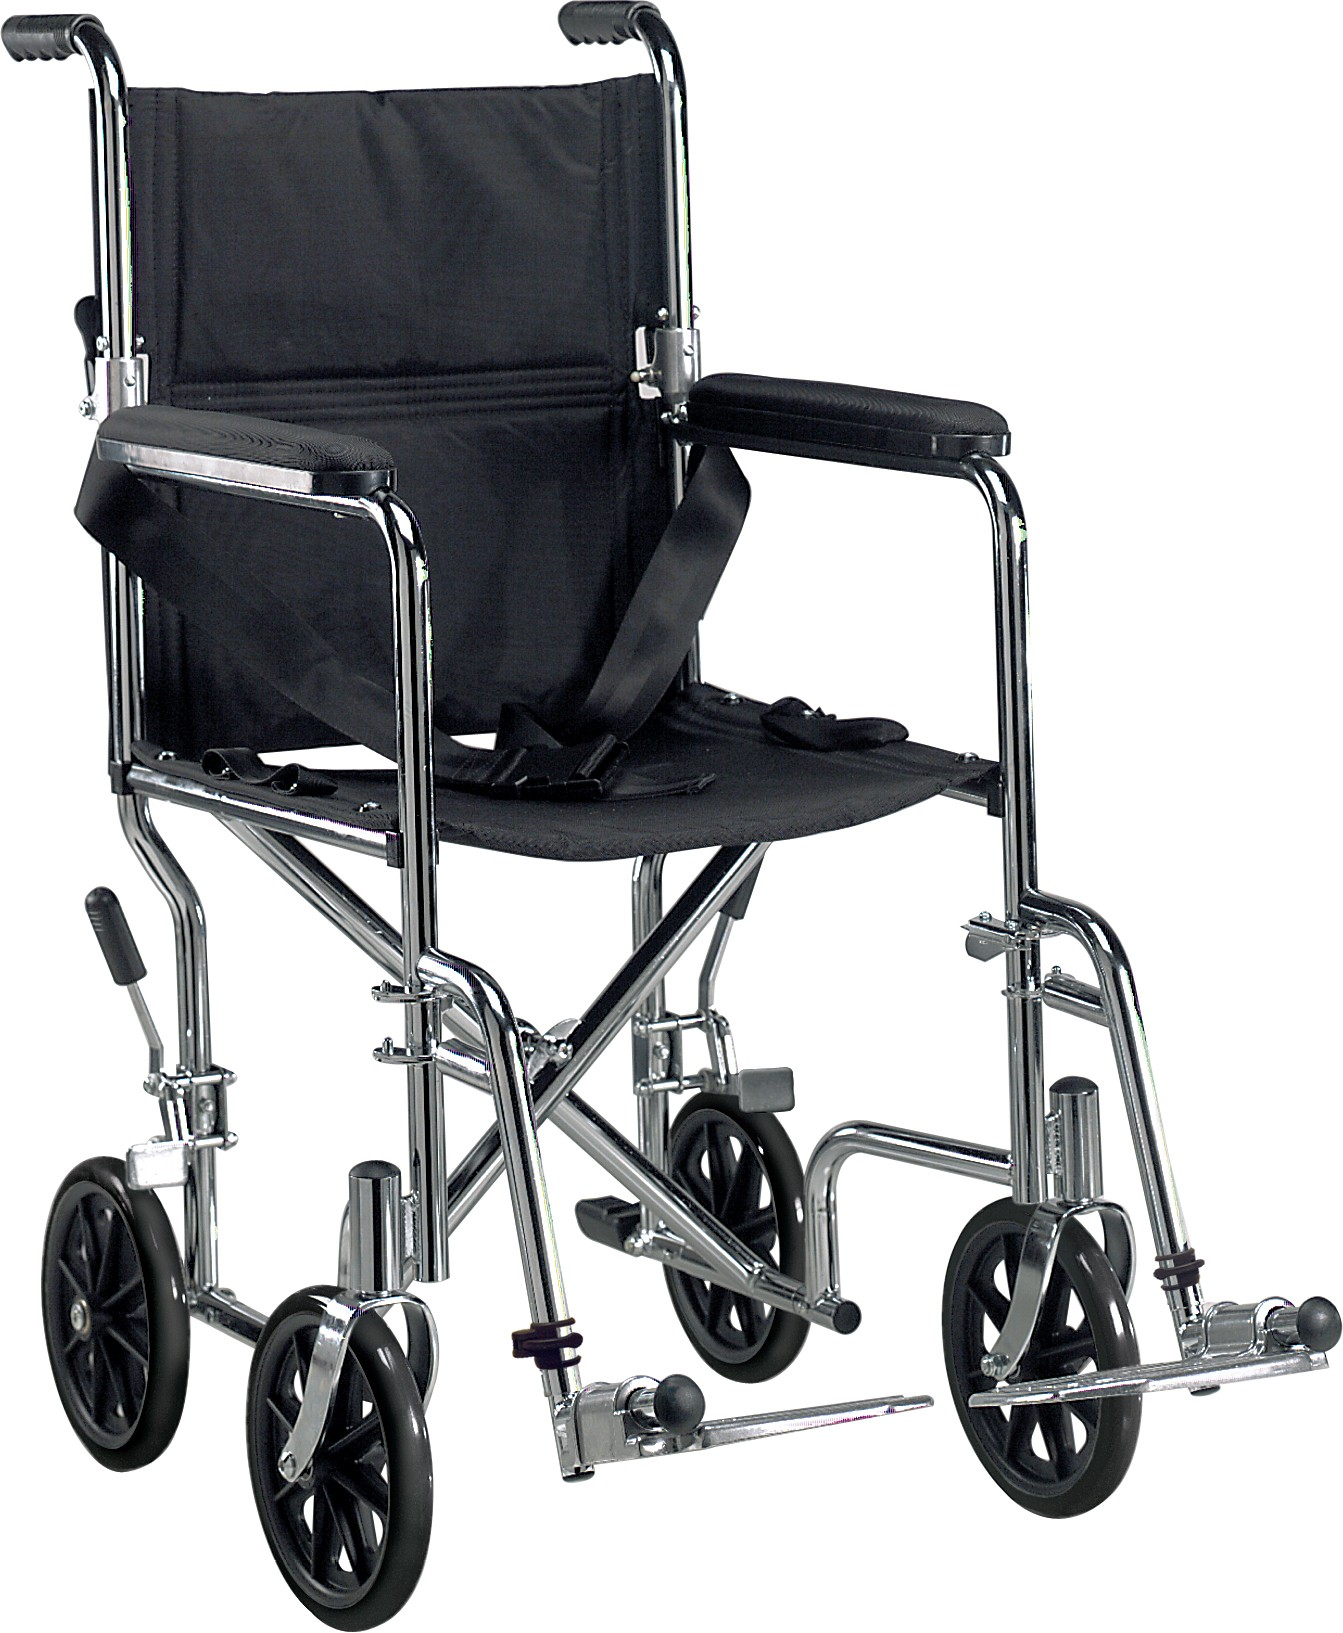 drive transport chair dining table chairs set of 4 medical deluxe go kart steel chrome